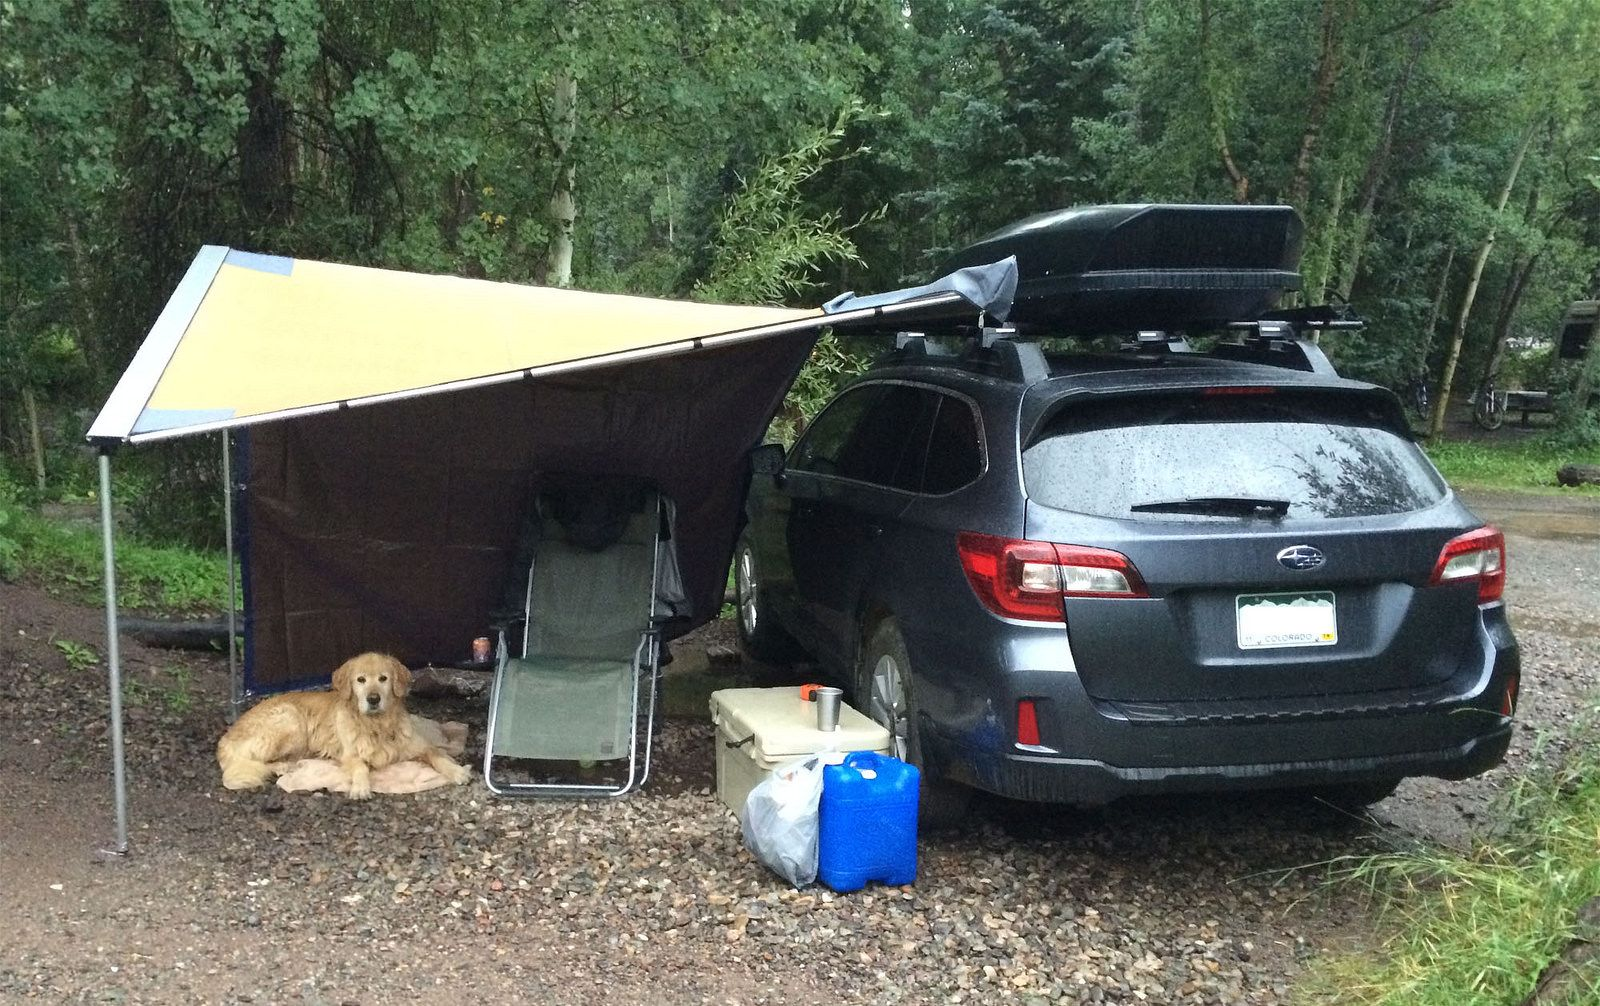 Help Cool Me Down Camping In The Subaru Bed Frame Ideas